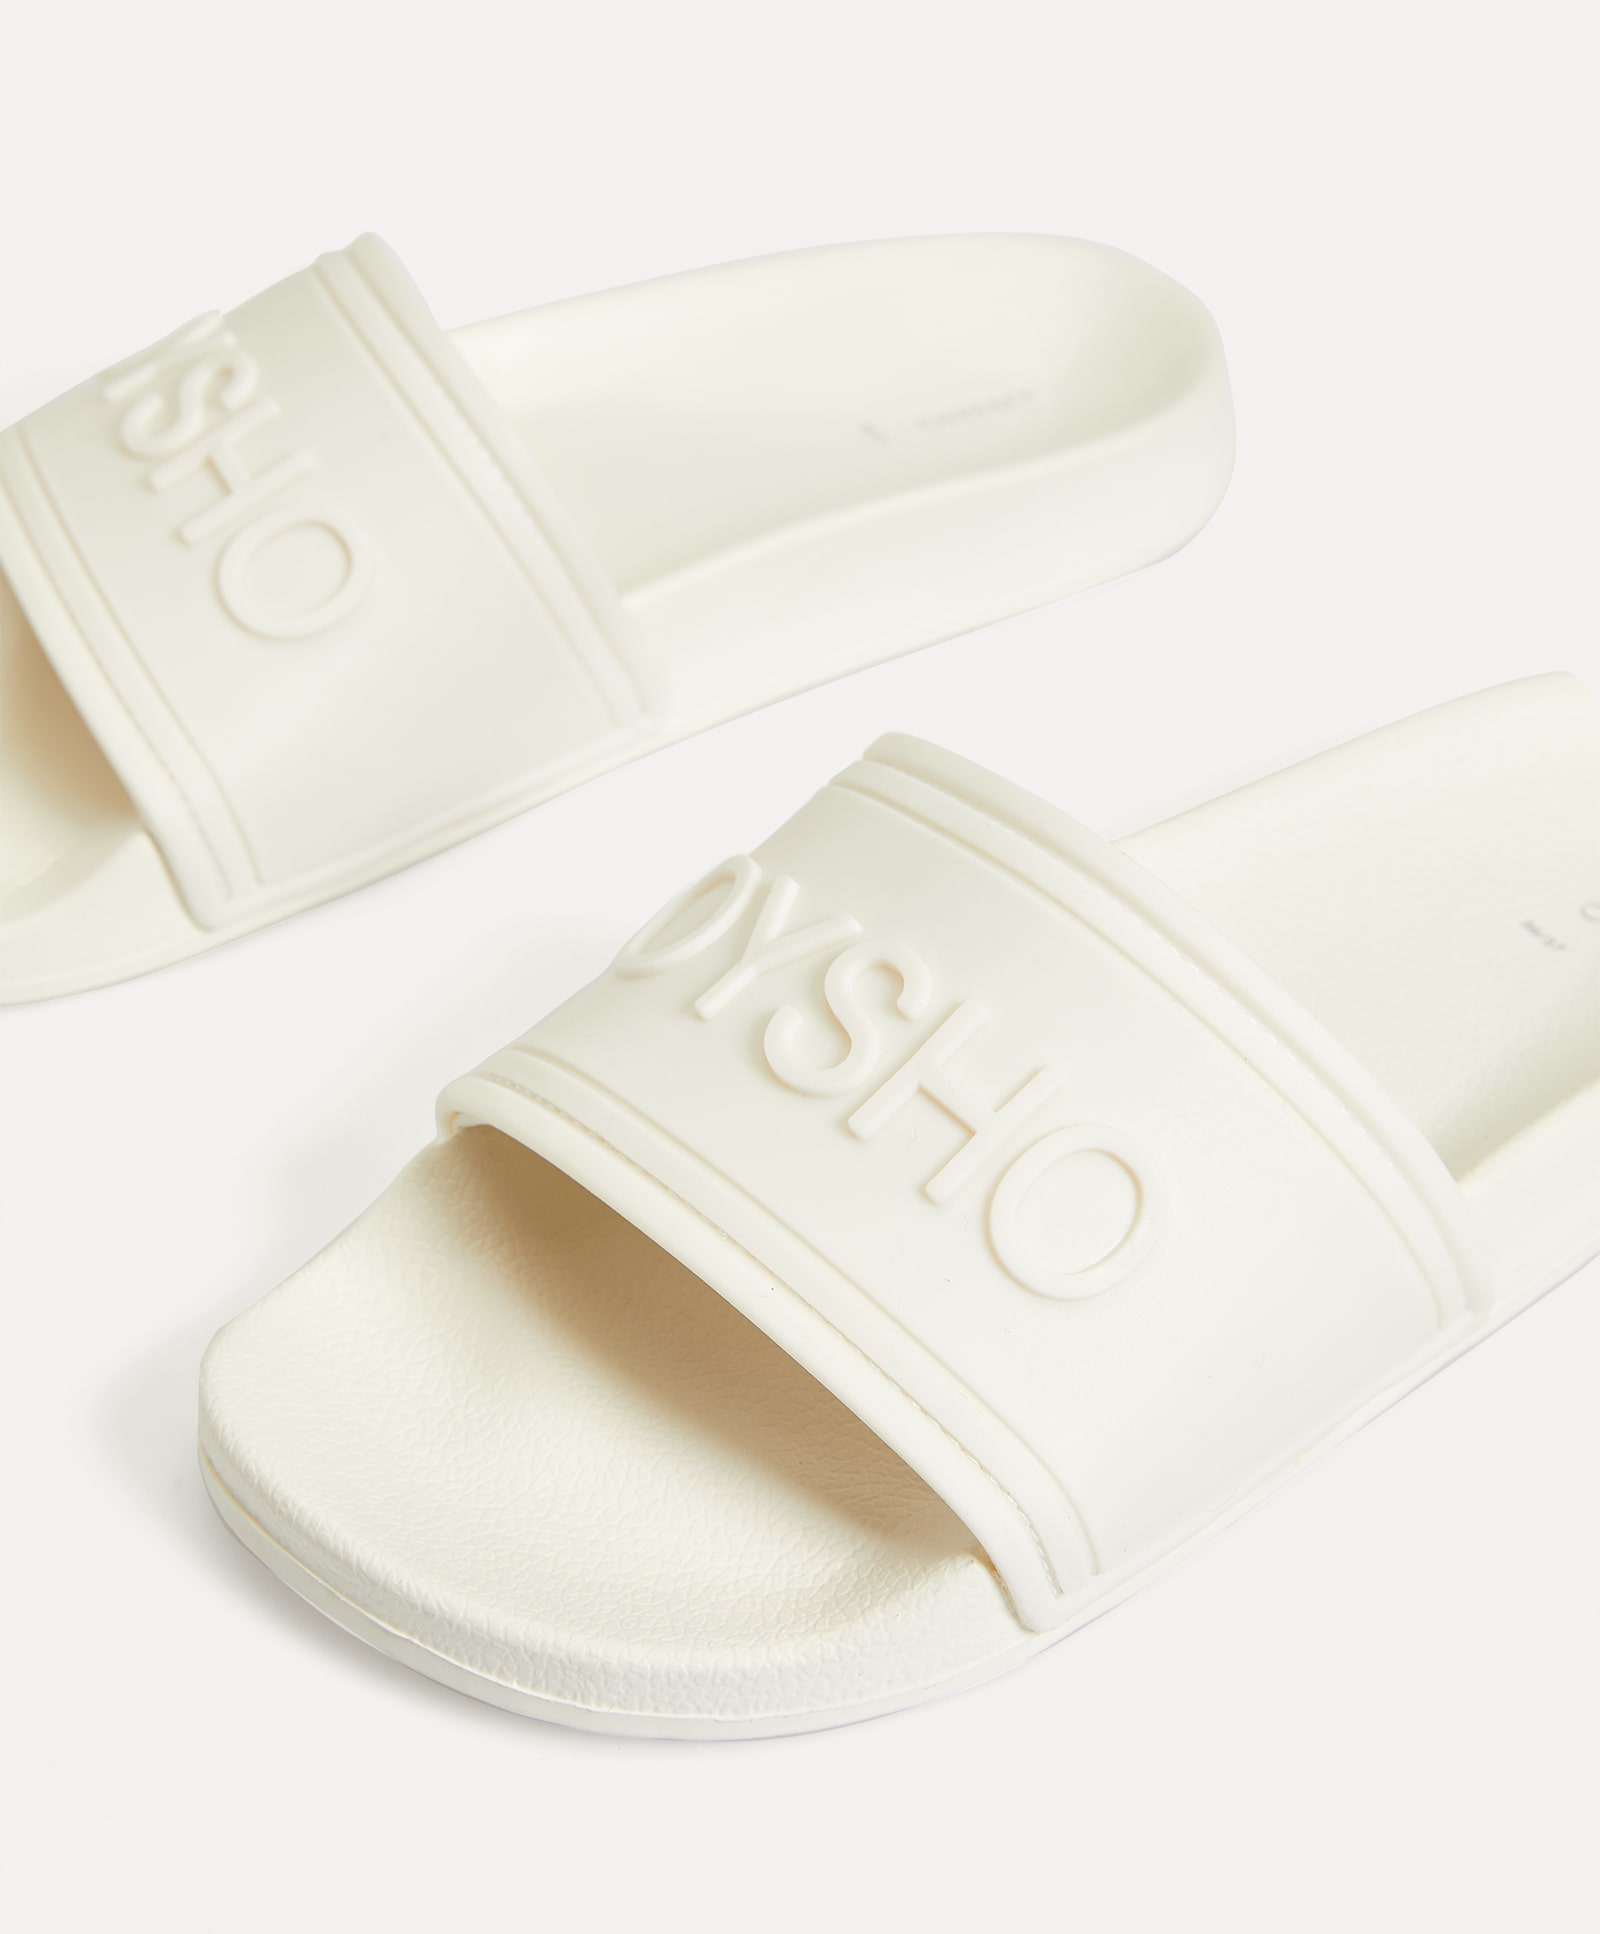 Slippers in total white with logo design